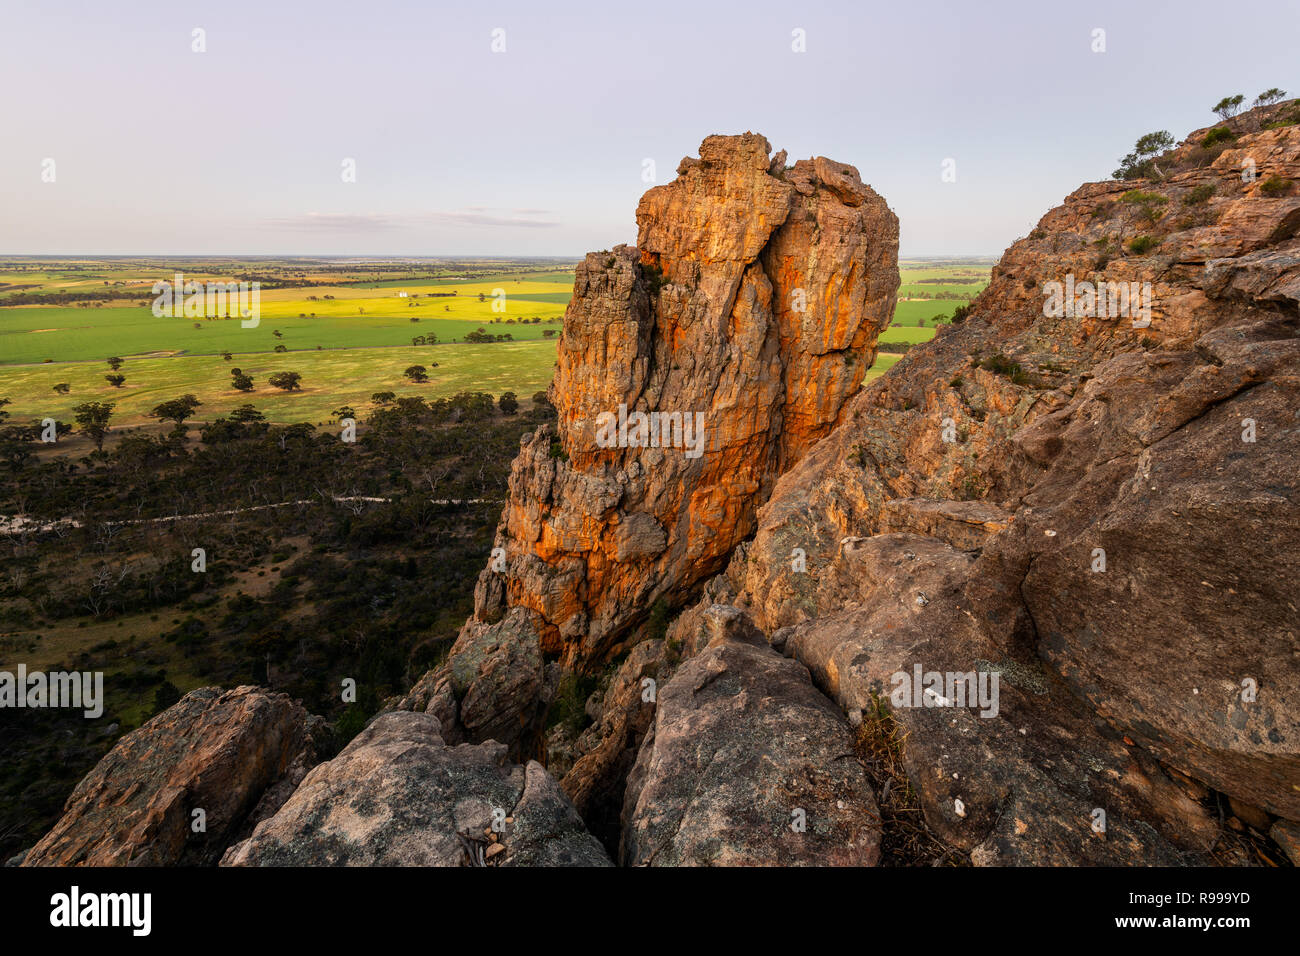 The Pharos is a rock formation at Mount Arapiles, very popular for climbing. - Stock Image